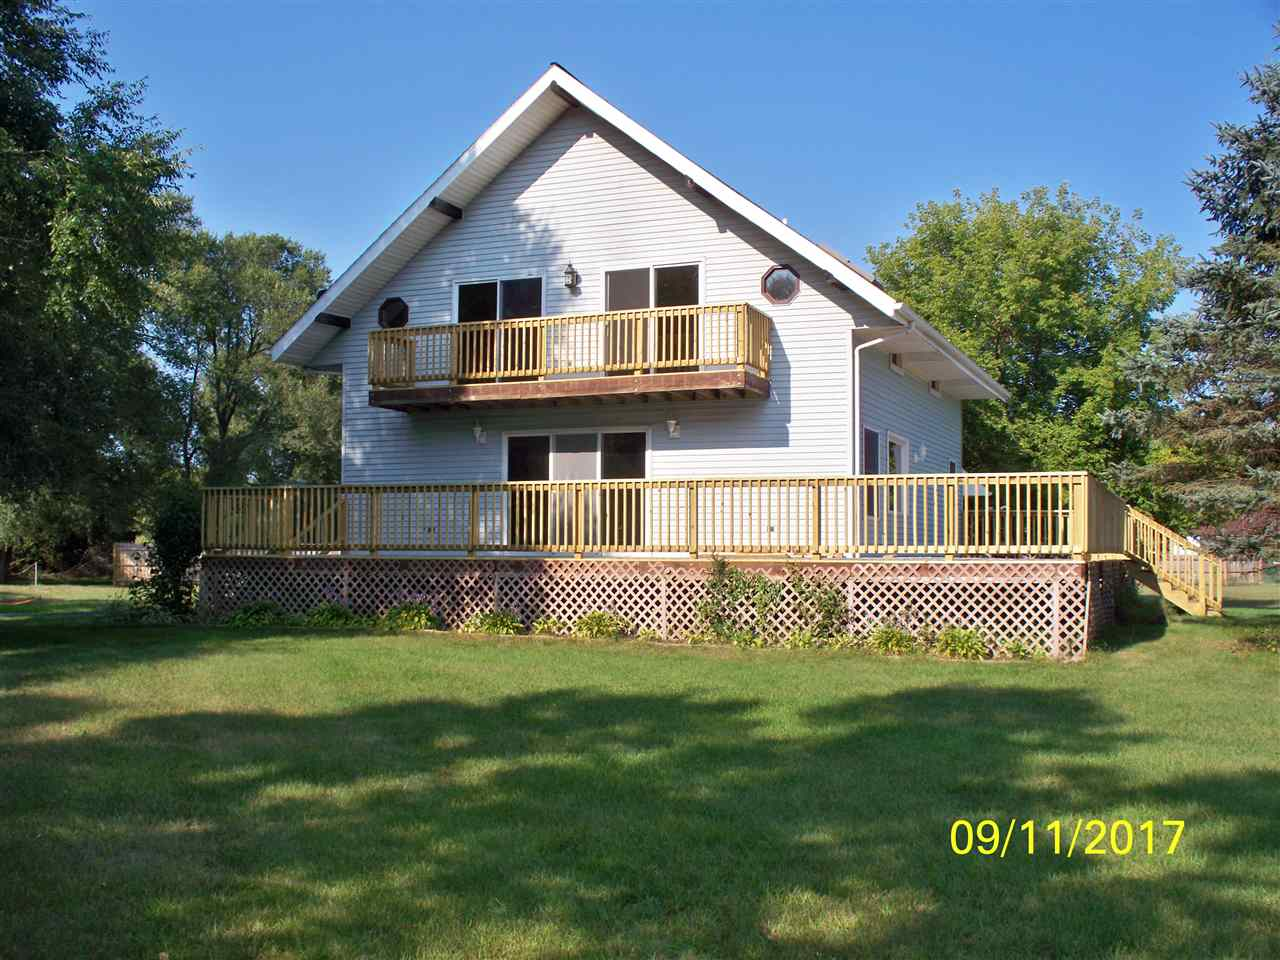 7427 Lexington St, Arena, WI 53503